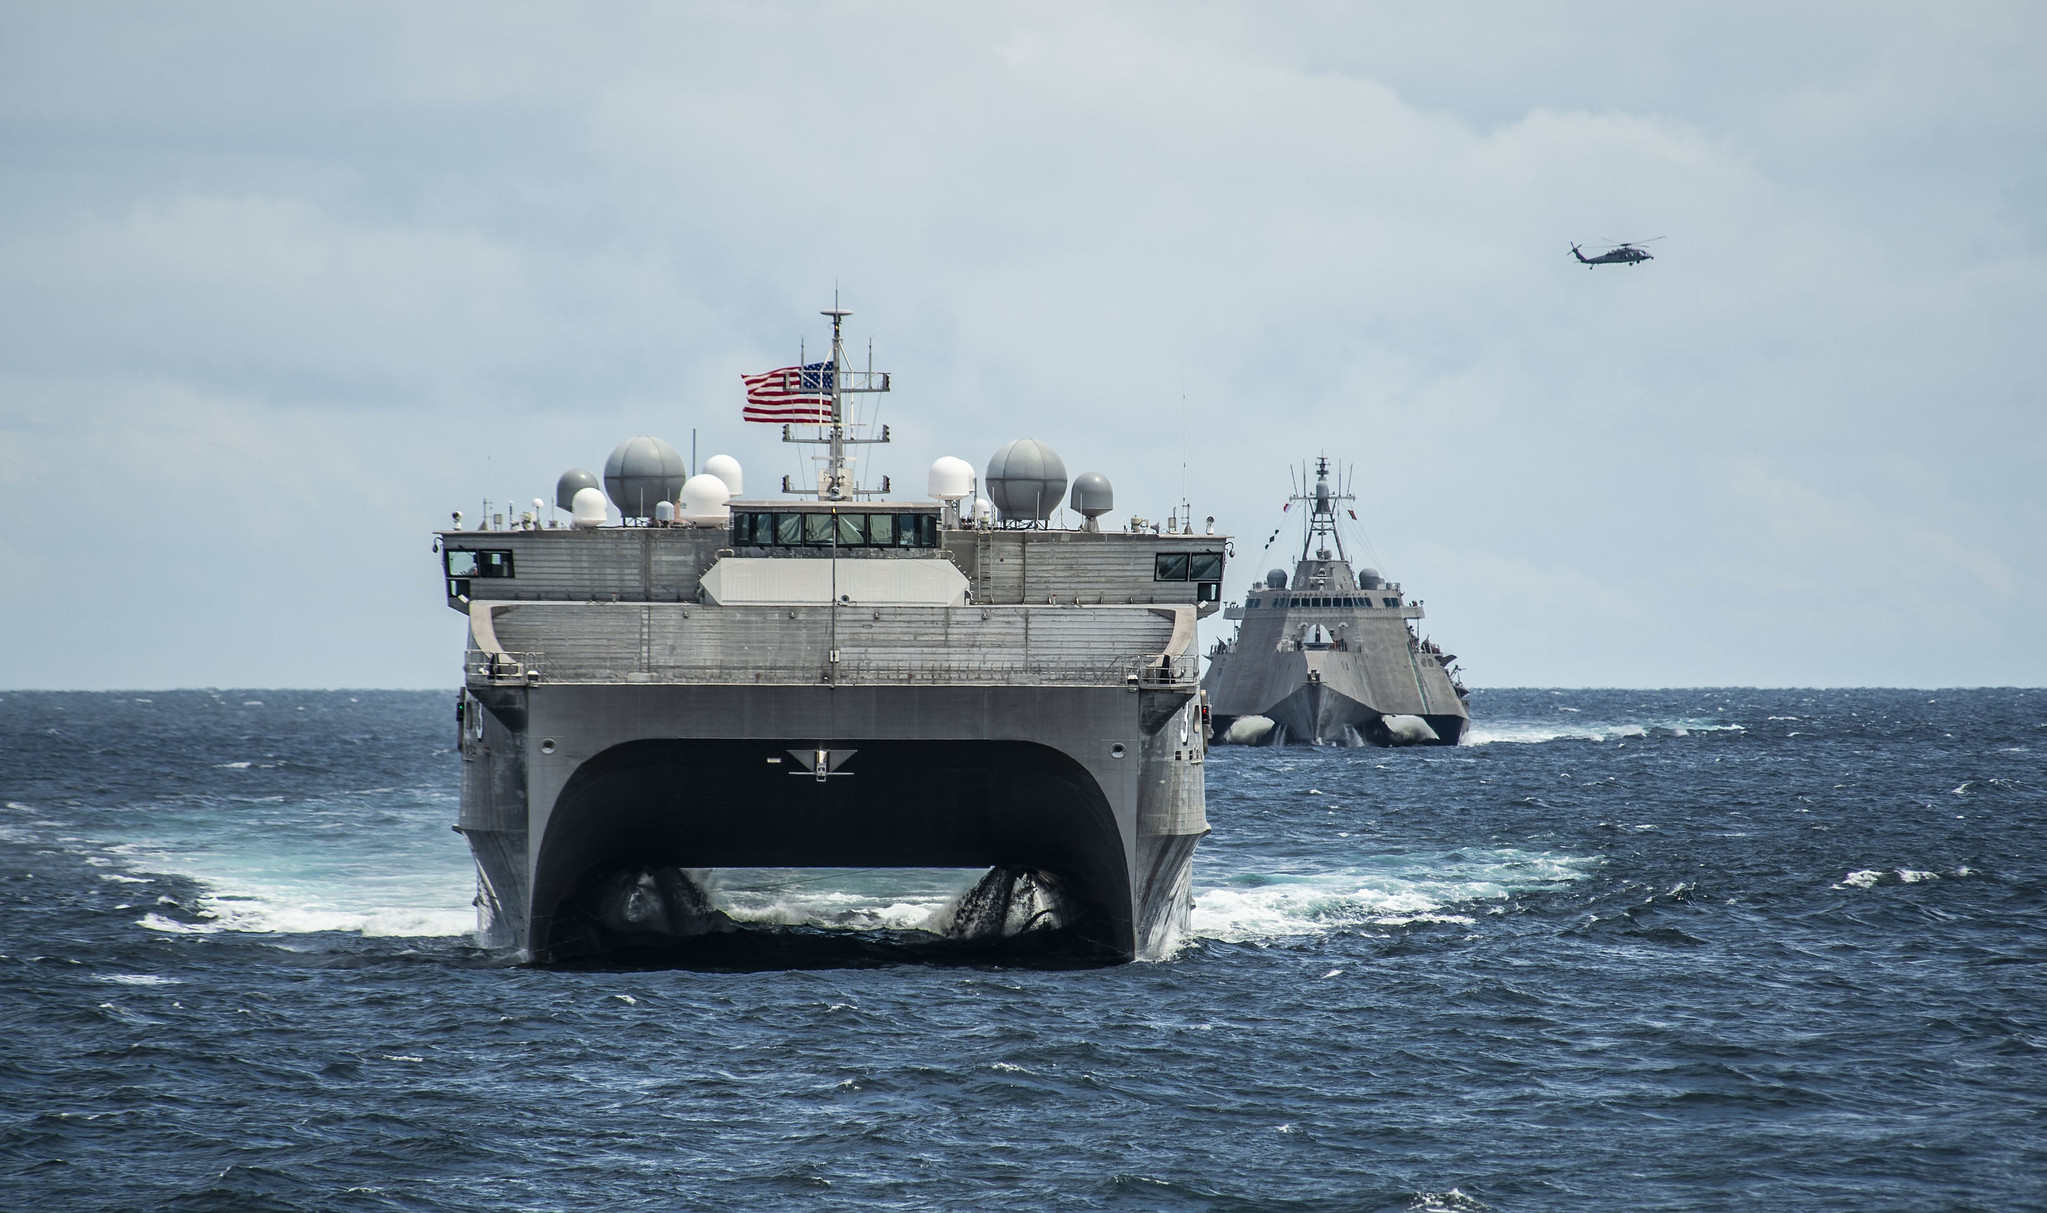 The Spearhead-class expeditionary fast transport ship USNS Millinocket (T-EPF 3), the Independence-variant littoral combat ship USS Montgomery (LCS 8) and an MH-60S Sea Hawk helicopter assigned to the Wildcards of Helicopter Sea Combat Squadron (HSC) 23 assemble in formation Oct. 29, 2019, for a photo exercise in support of Cooperation Afloat Readiness and Training (CARAT) Brunei. (Mass Communication Specialist 2nd Class Christopher A. Veloicaza/Navy)